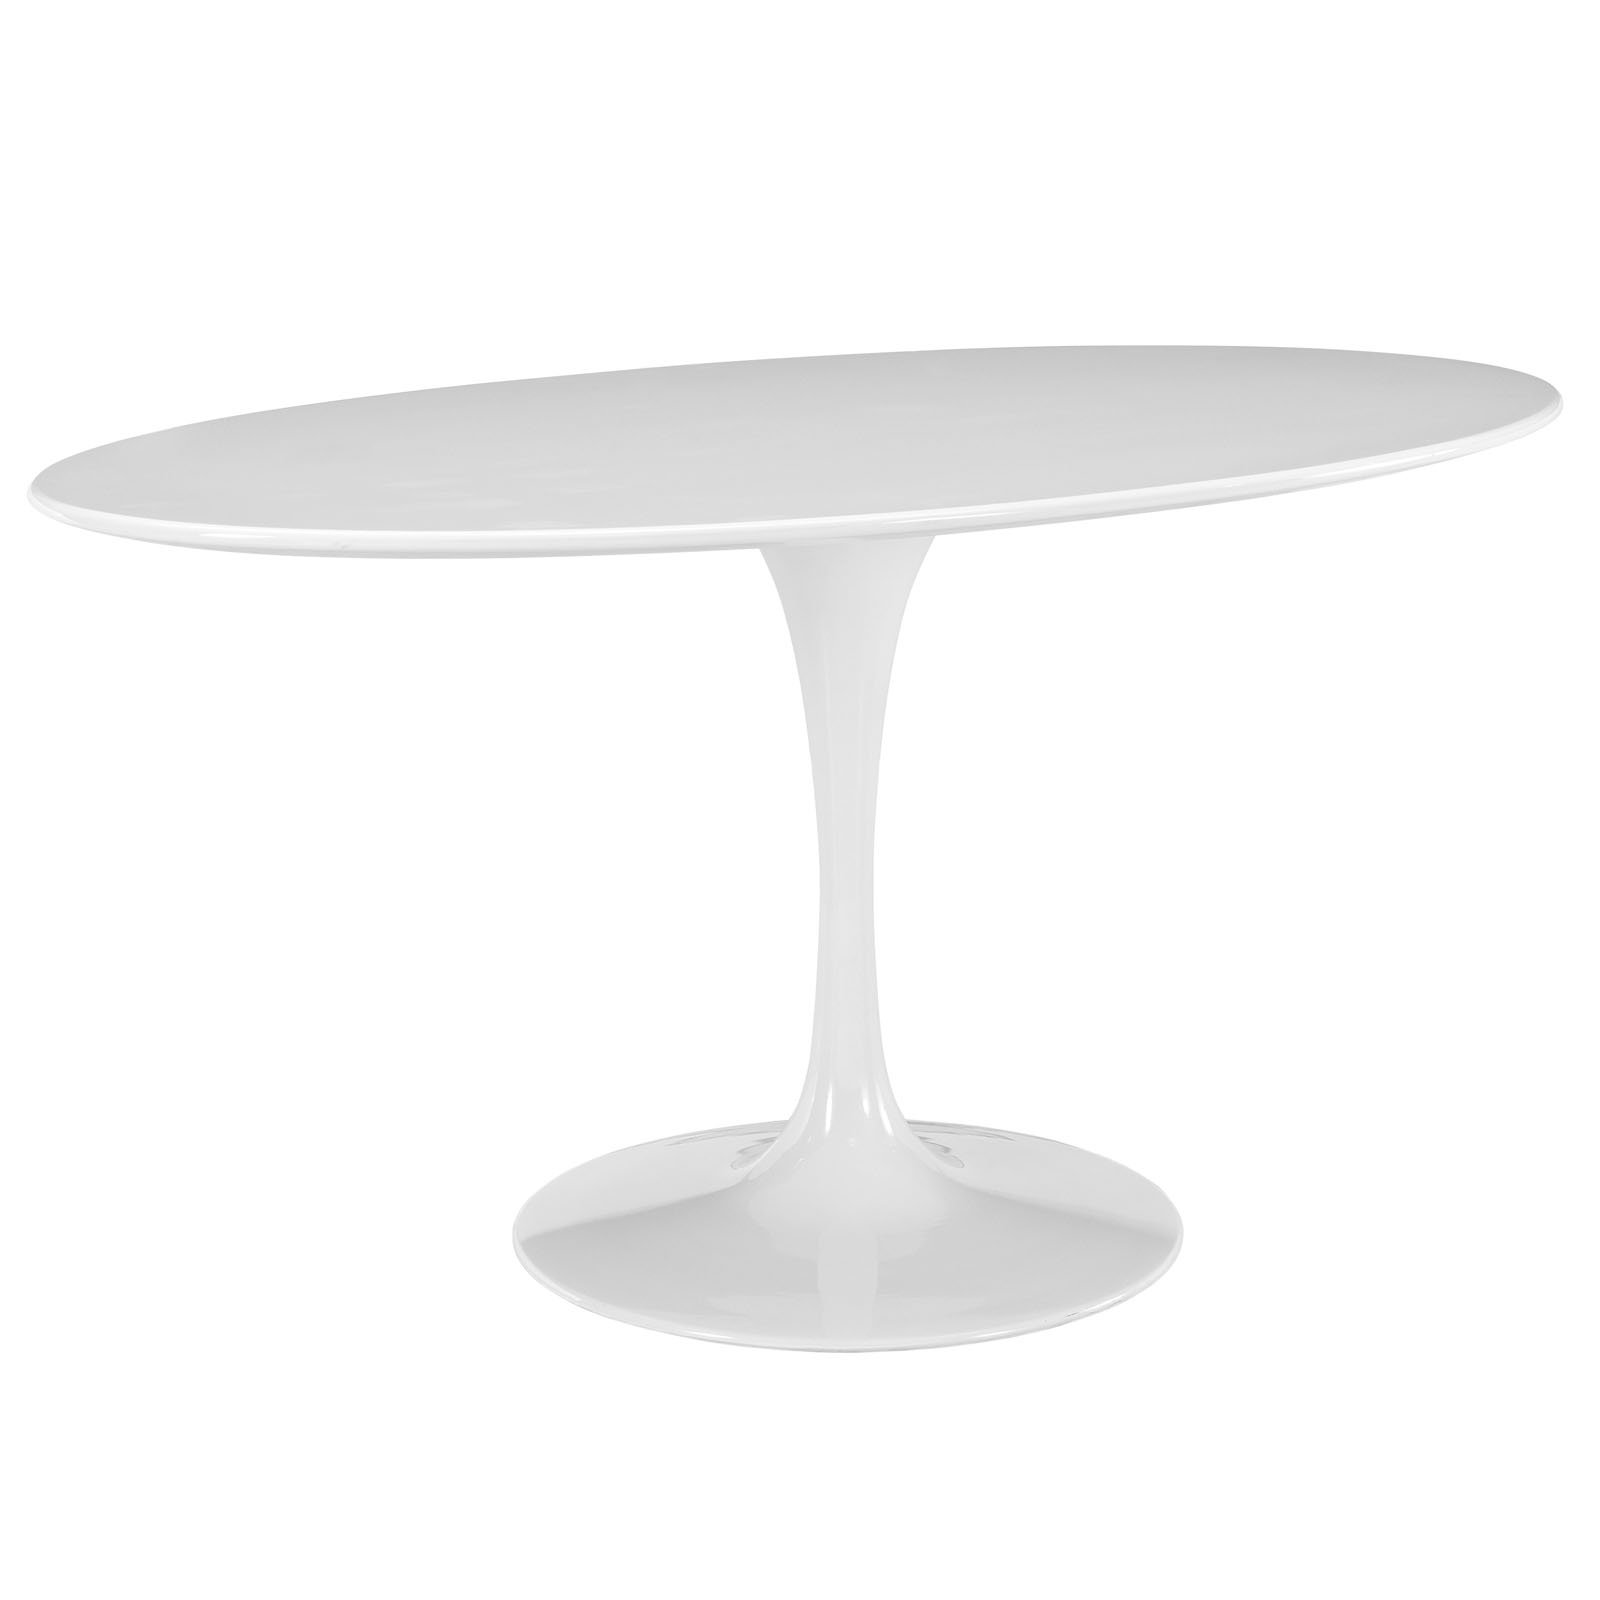 Modway Lippa 60'' Mid-Century Modern Kitchen and Dining Table with Oval Top and Pedestal Base in White by Modway (Image #2)